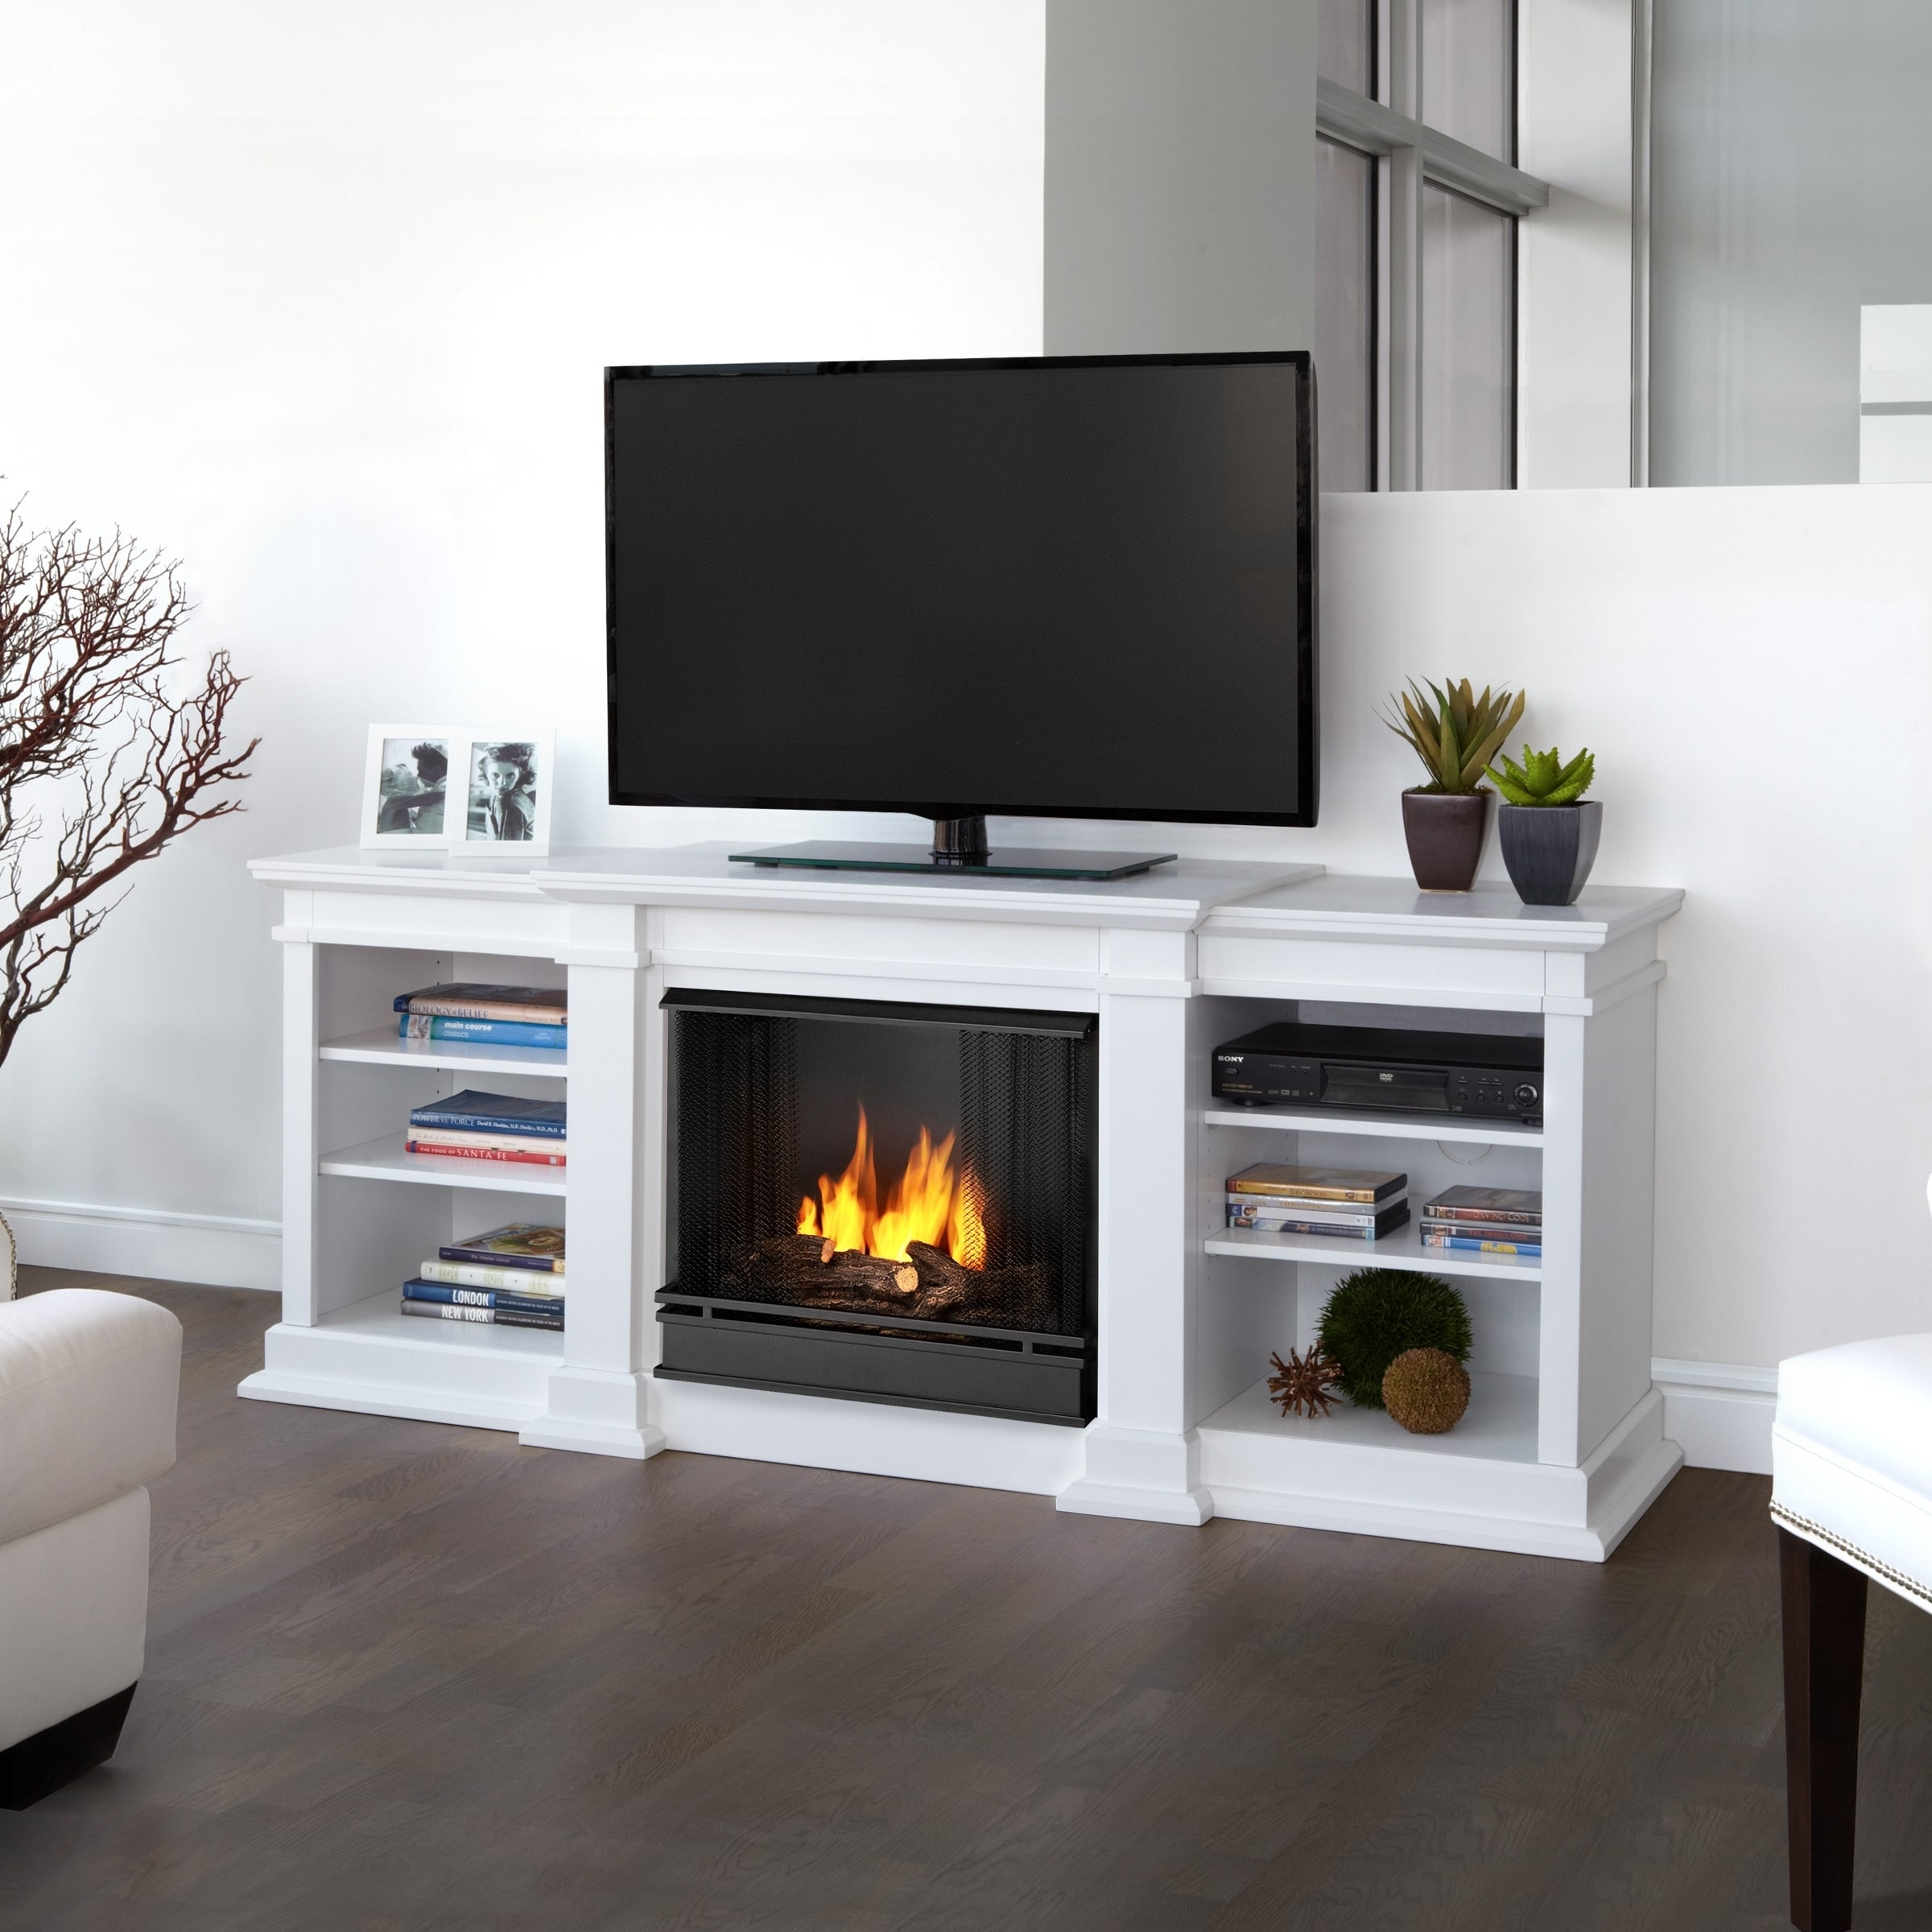 silo infrared bal entertainment black center with fireplace walnut white harbour